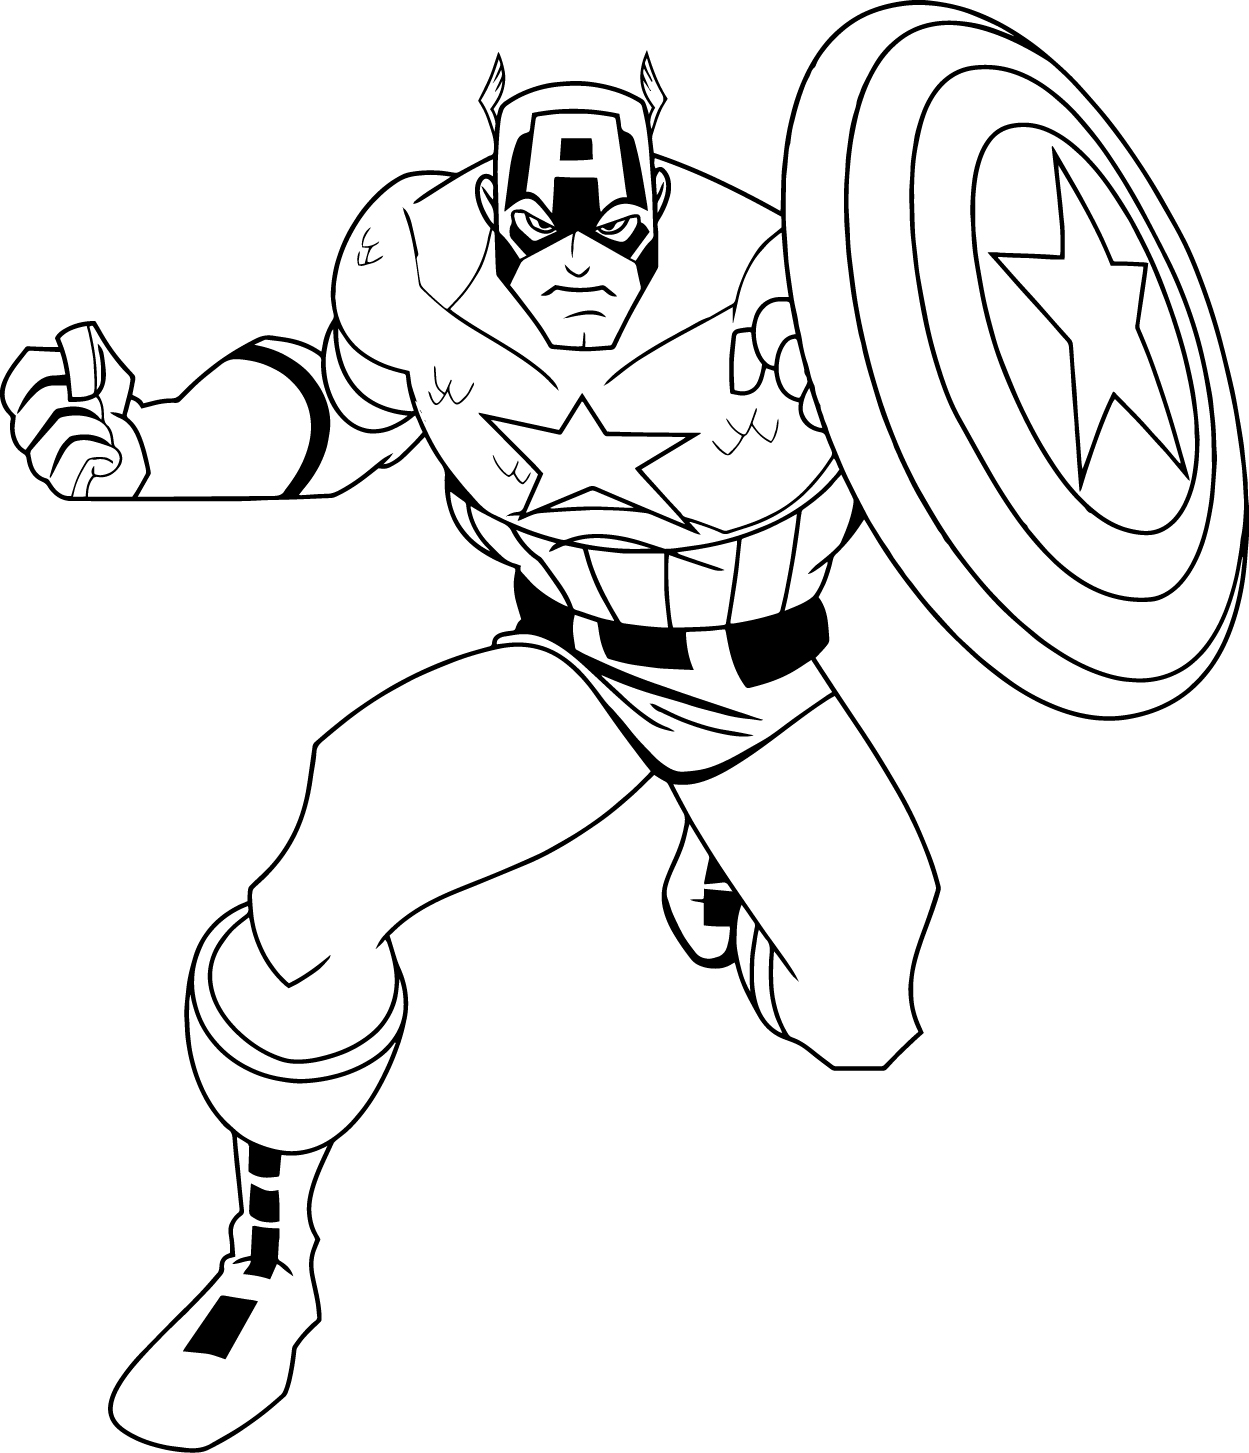 Captain America Coloring Pages To Download And Print For Free Captain America Printable Coloring Pages